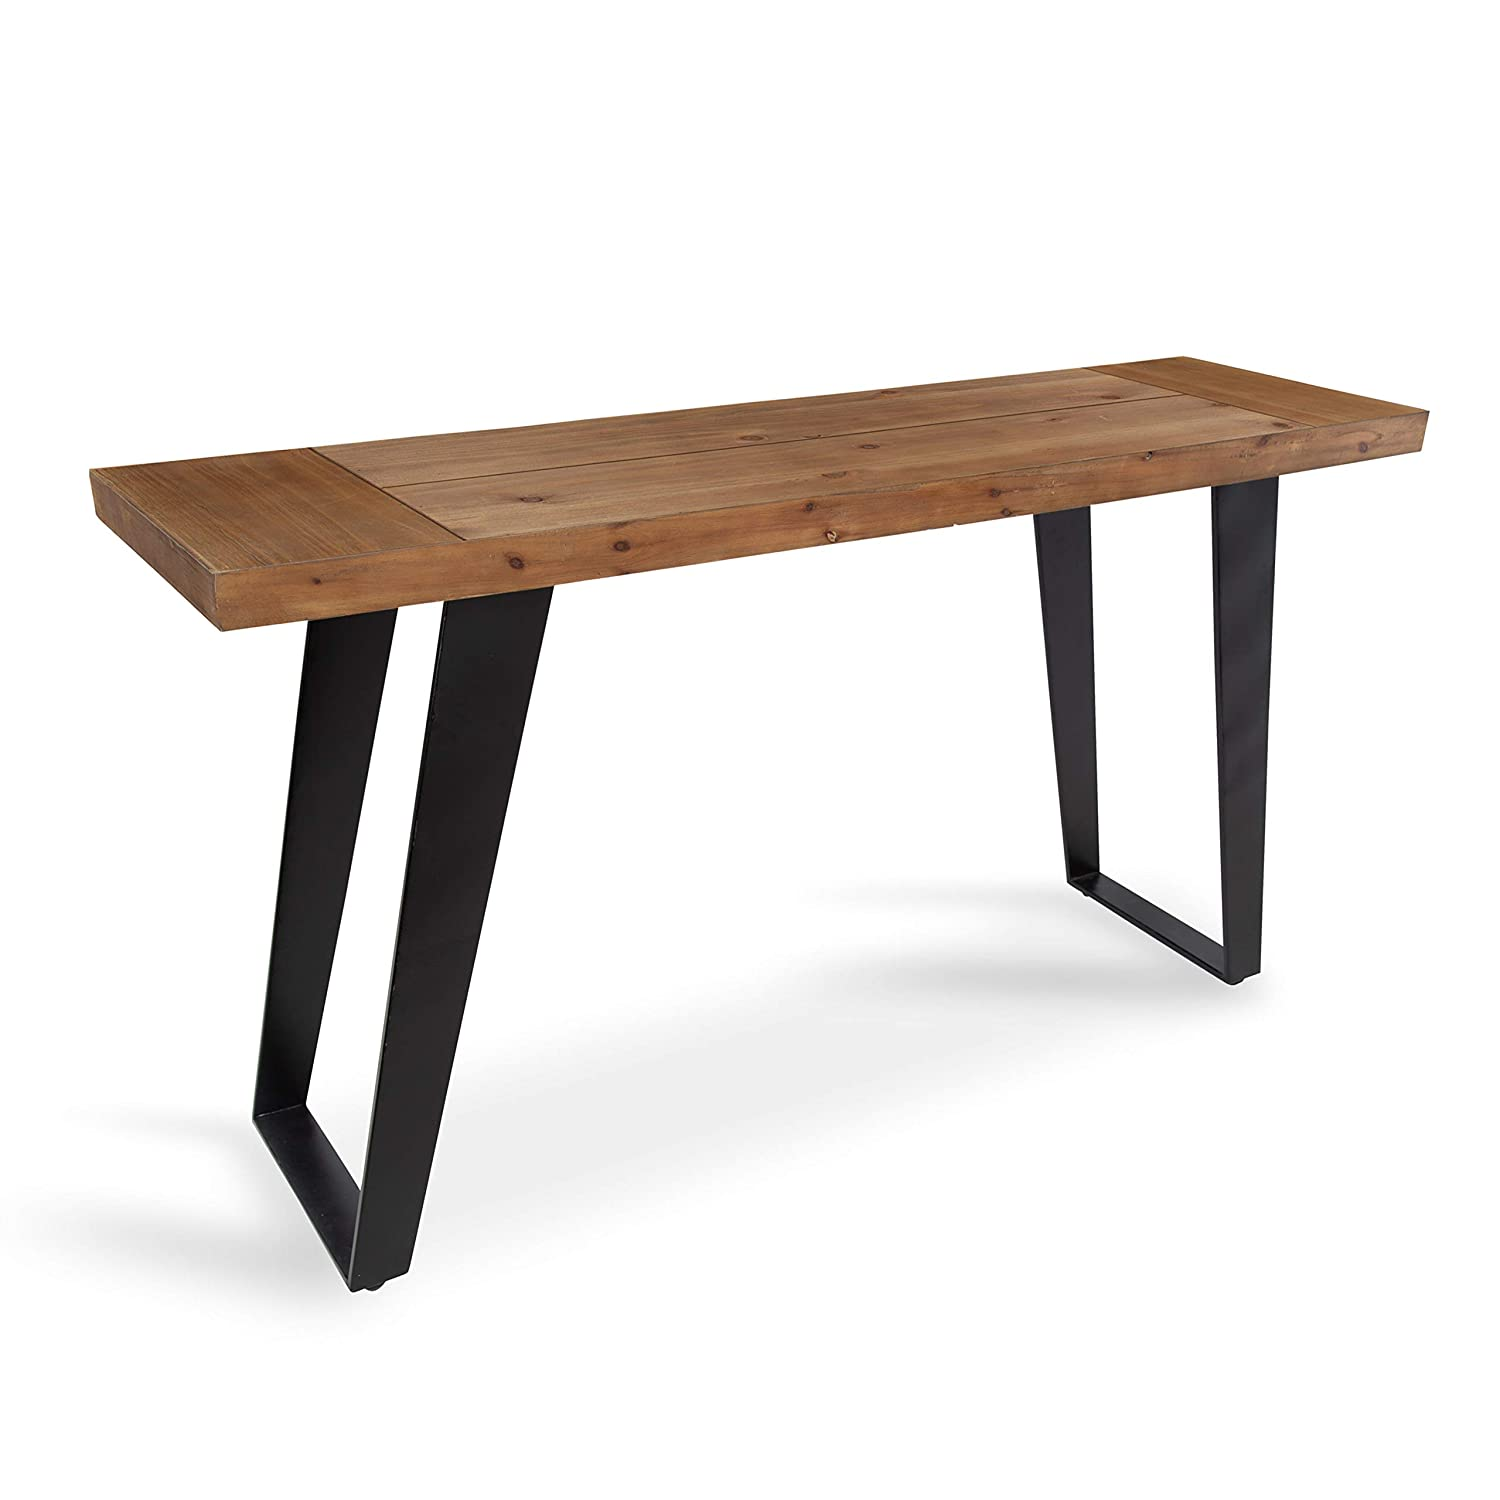 Kate and Laurel Lazlo Rustic Modern Console Table with Wooden Top and Black Metal Base